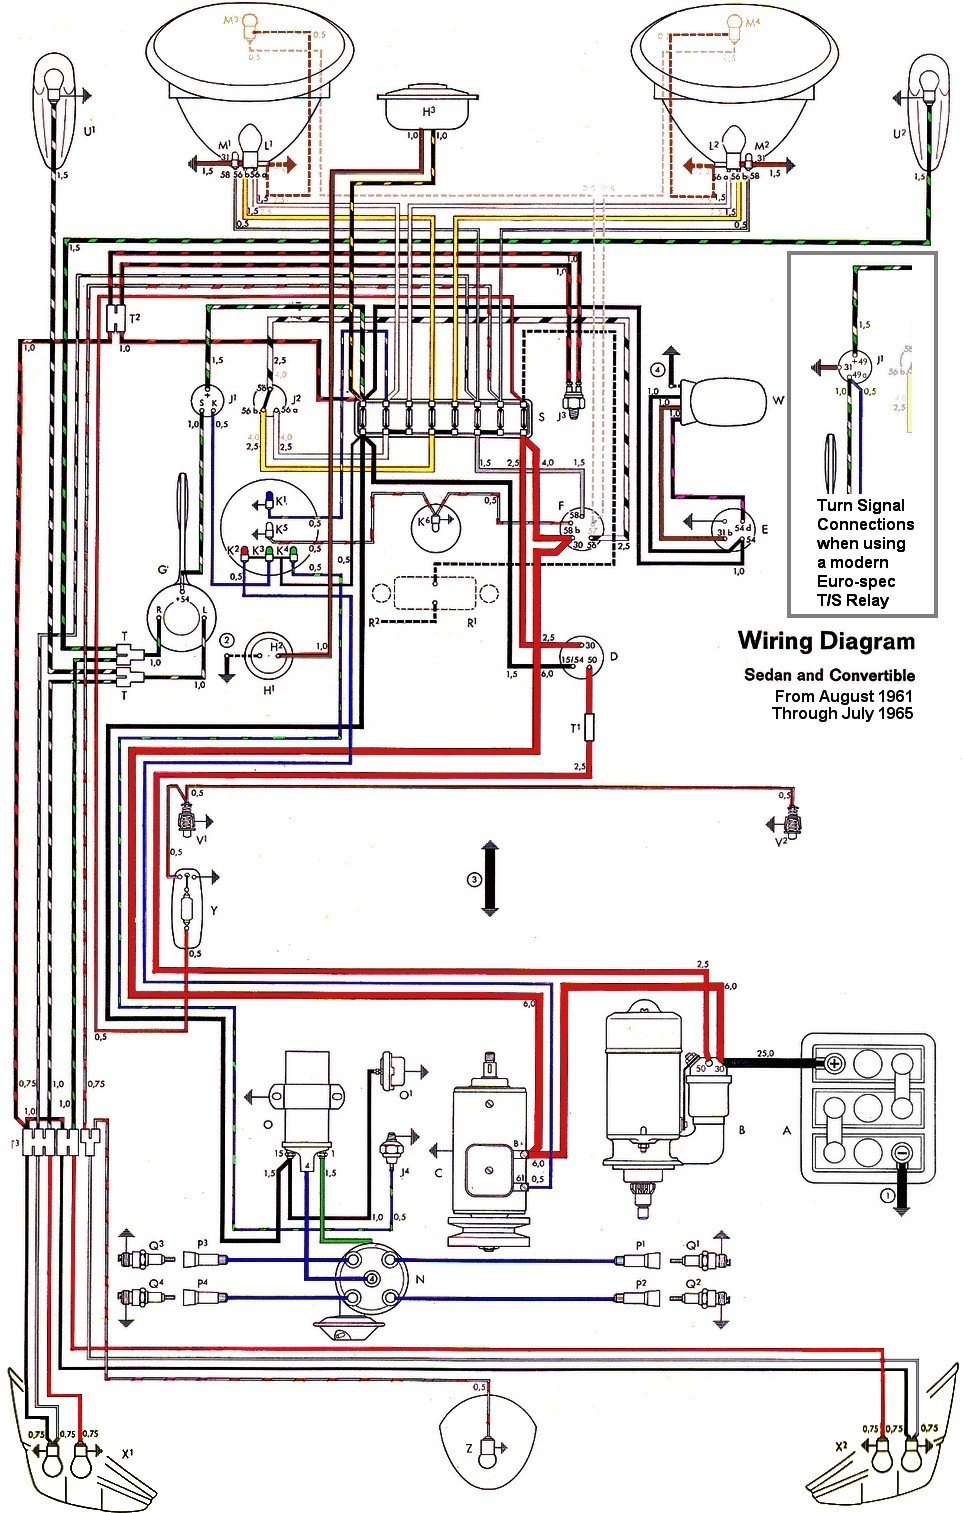 bug_62 65withinset vw wiring harness diagram cj7 wiring harness diagram \u2022 wiring Wiring Harness Diagram at honlapkeszites.co